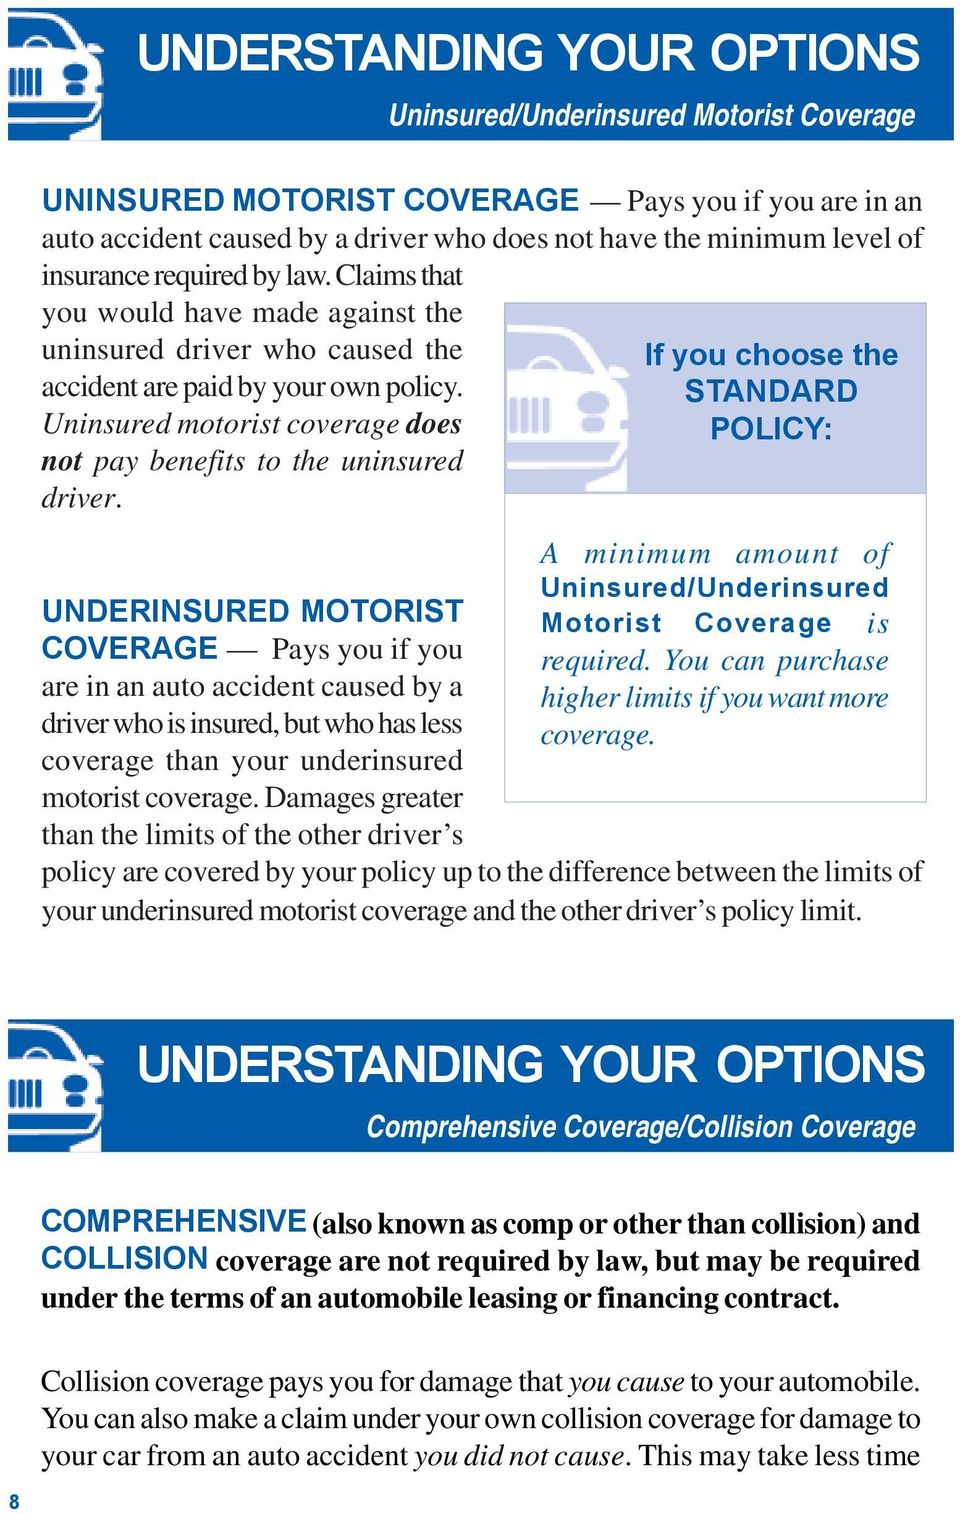 UNDERINSURED MOTORIST COVERAGE Pays you if you are in an auto accident caused by a driver who is insured, but who has less coverage than your underinsured motorist coverage.